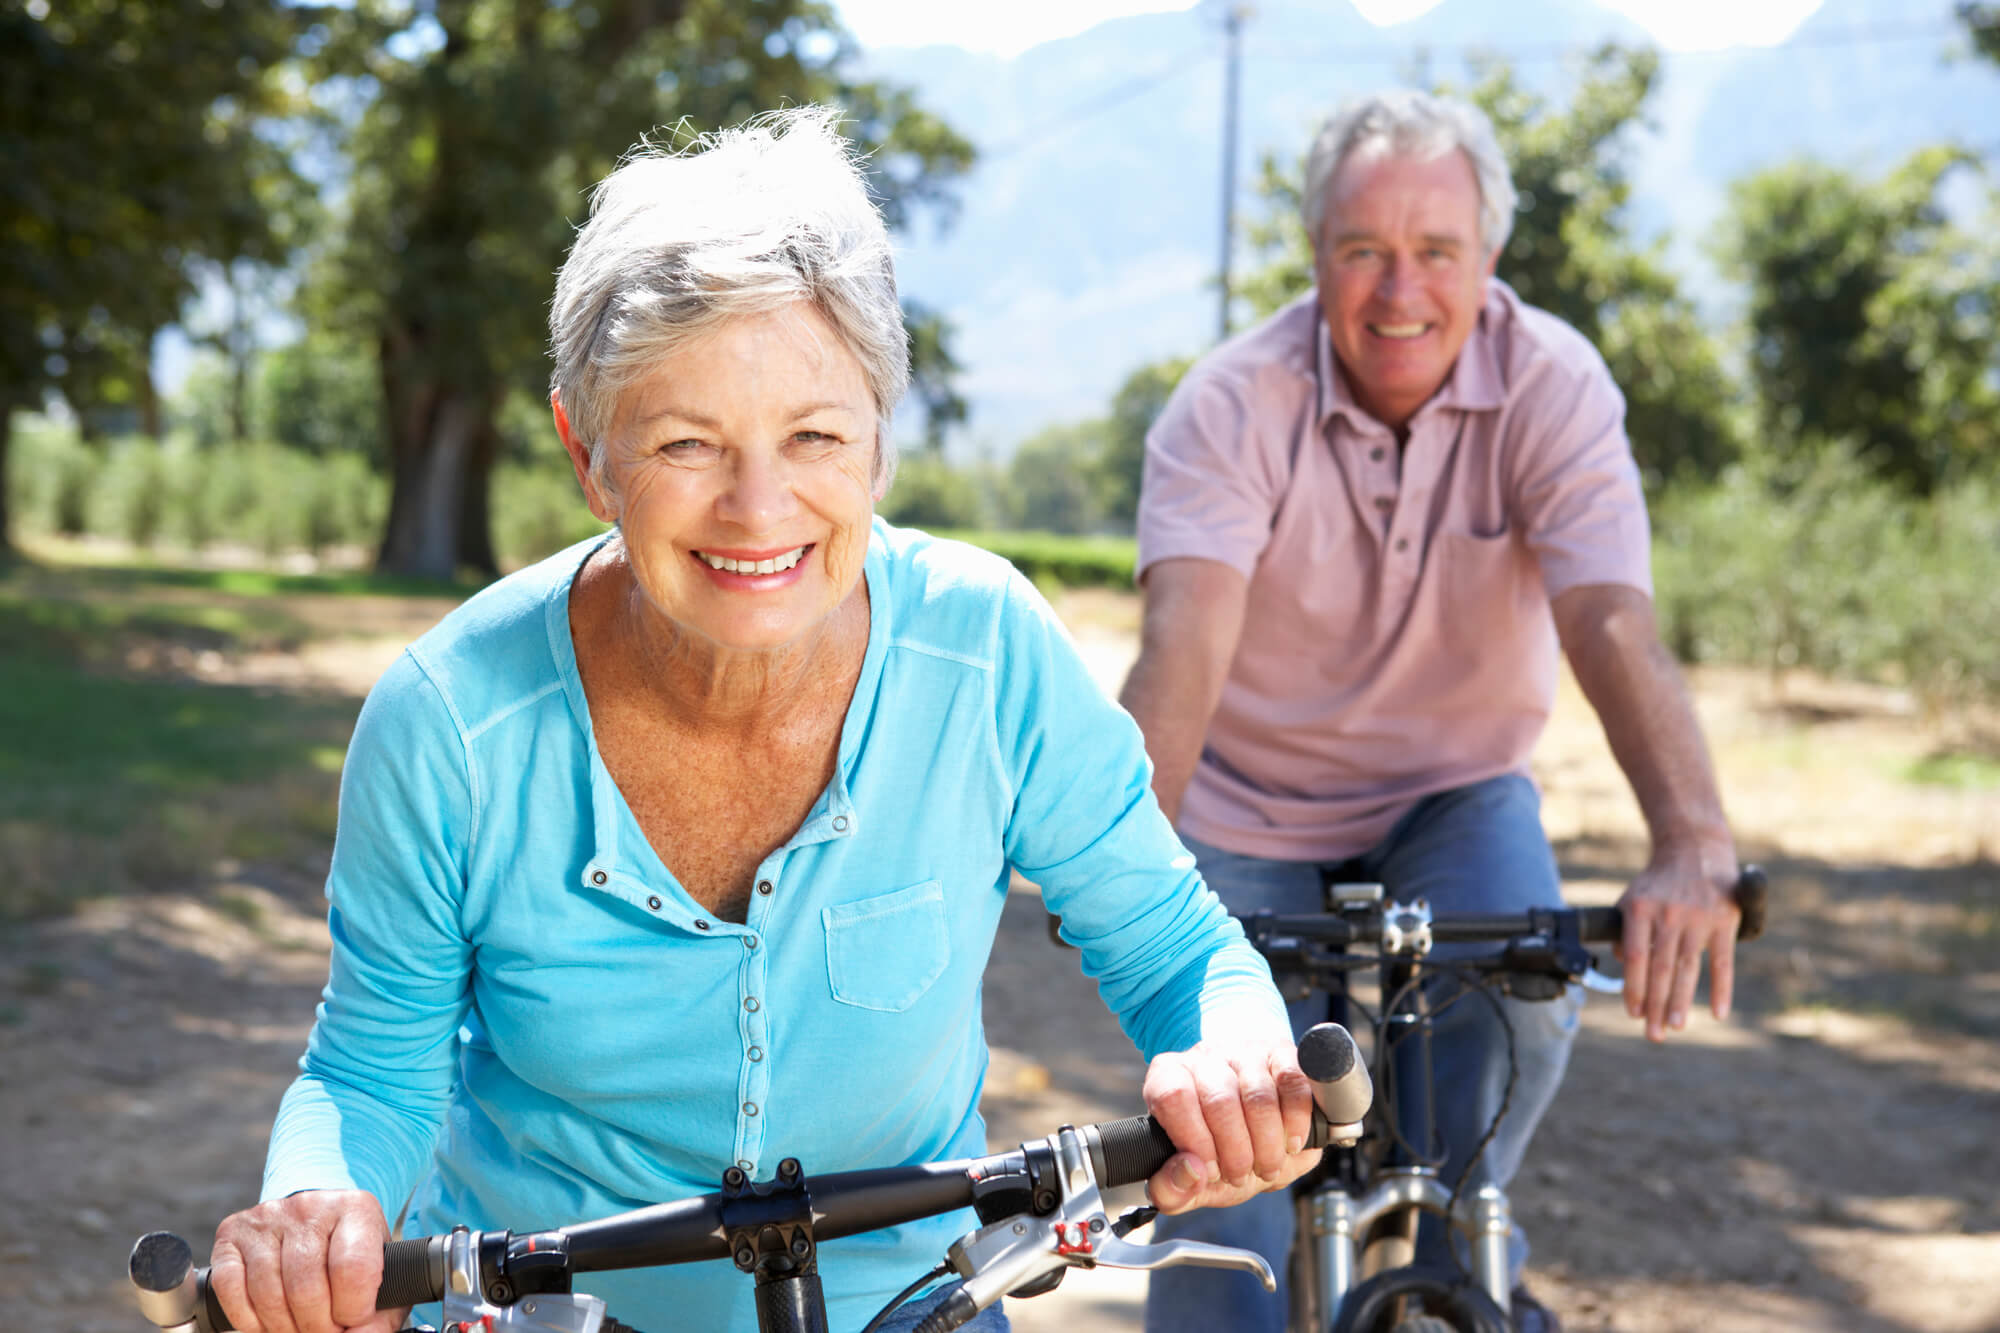 Two elderly people riding bicycles at independent living Oklahoma City